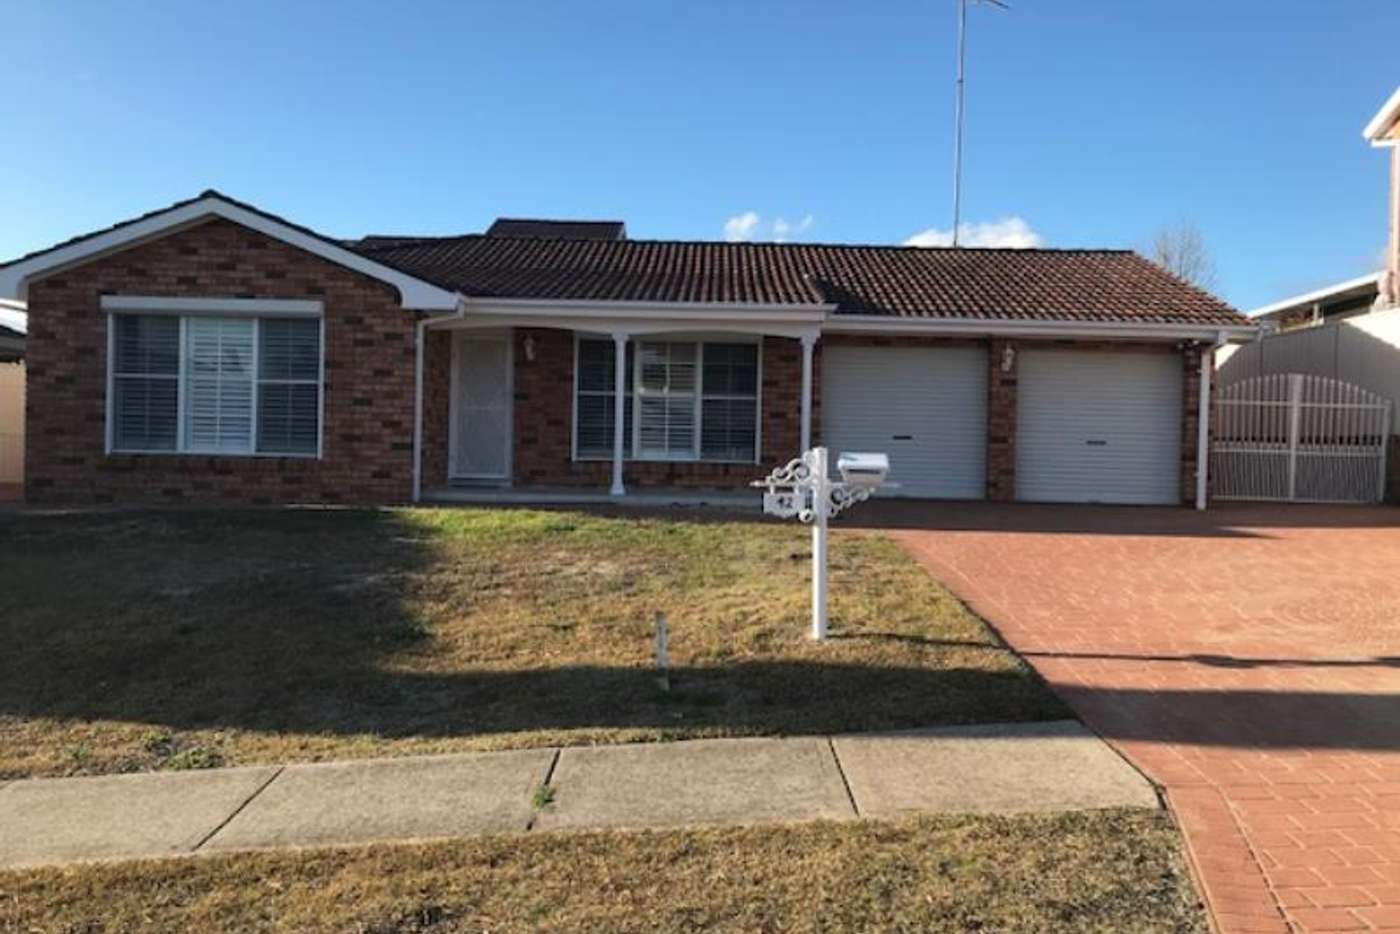 Main view of Homely house listing, 42 Coquet Place, Green Valley NSW 2168